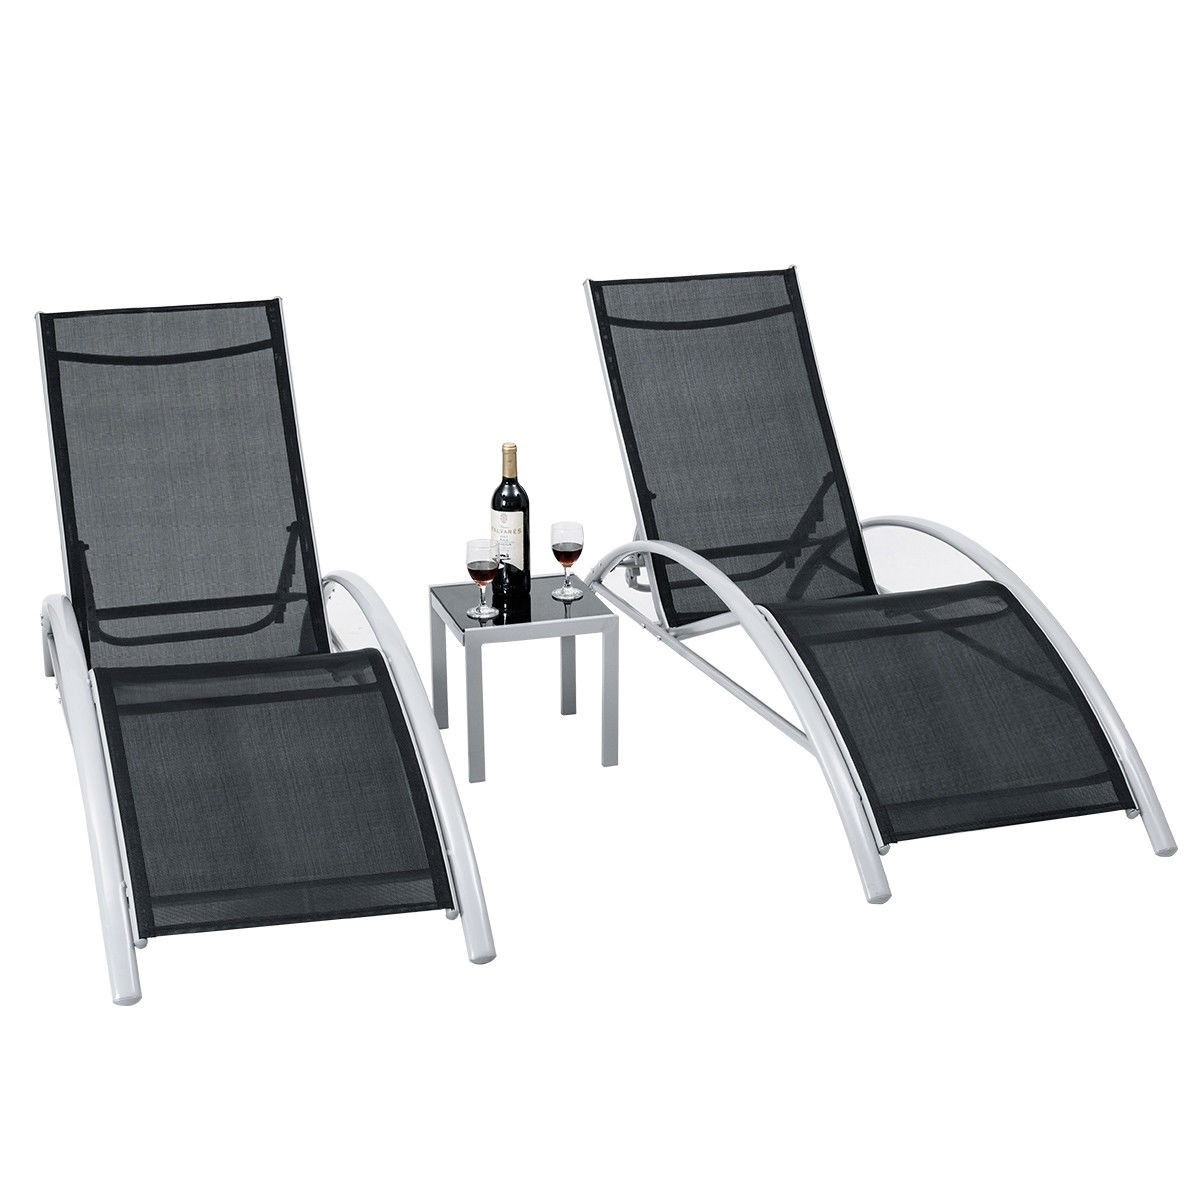 3 Piece Complete Black Outdoor Patio Pool Lounger Set Inside Recent Outdoor 3 Piece Chaise Lounger Sets With Table (Gallery 25 of 25)